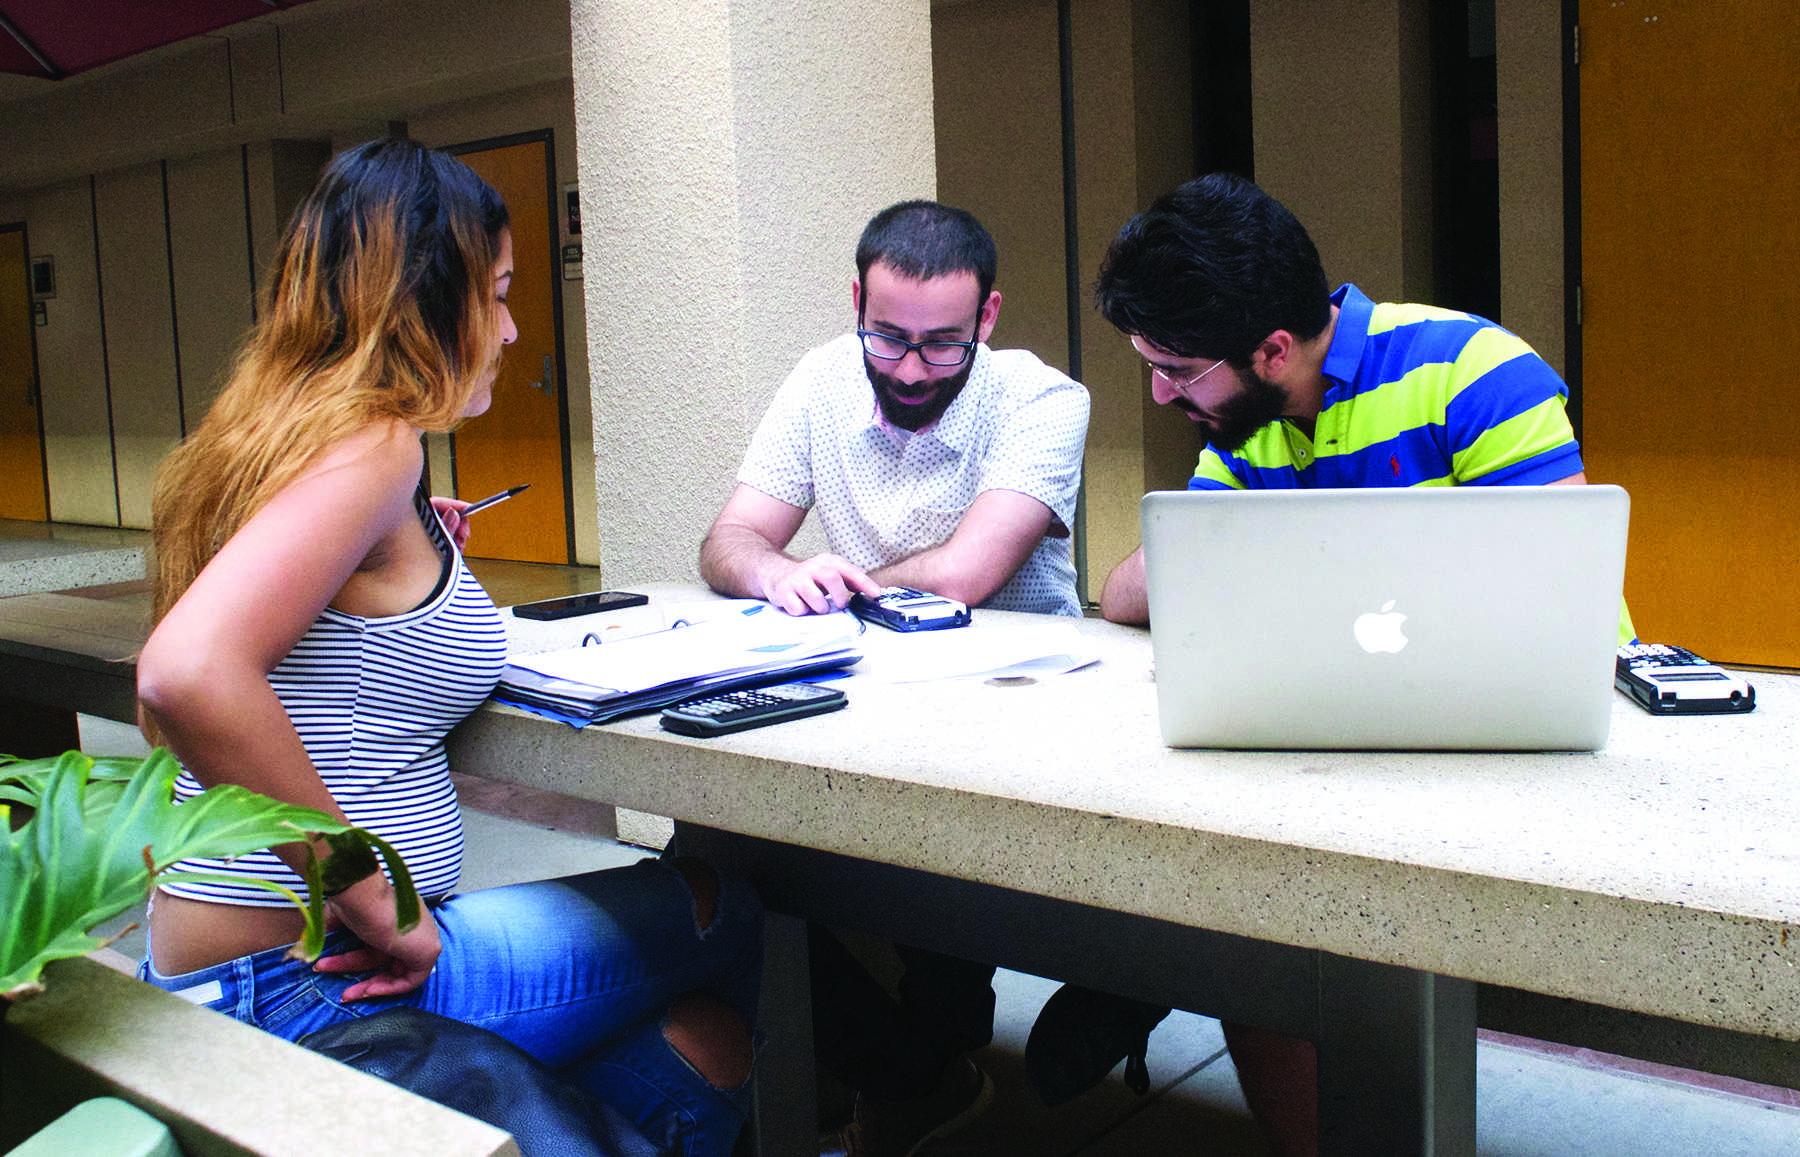 Senior supply chain management majors Kimberly Sanchez and Ibrahim Abduljibbar look at the calculator Joshua Rodgers it using to solve a problem for their homework. Photo credit: Alejandro Aranda